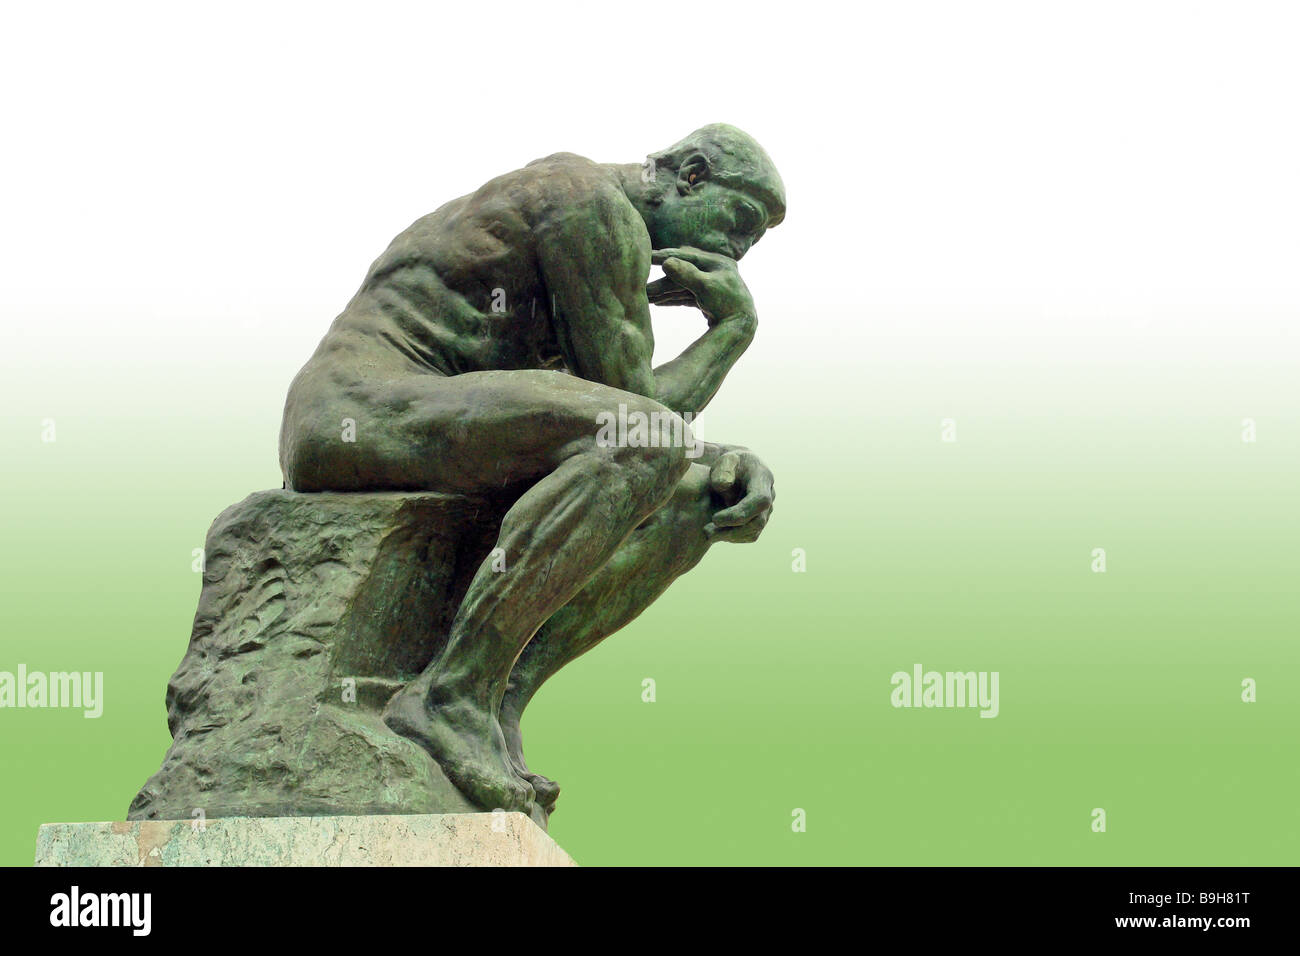 Art sculpture statue the thinker August Rodin  Augusts rodin famous sculptor Auguste Rodin sculpture representation - Stock Image